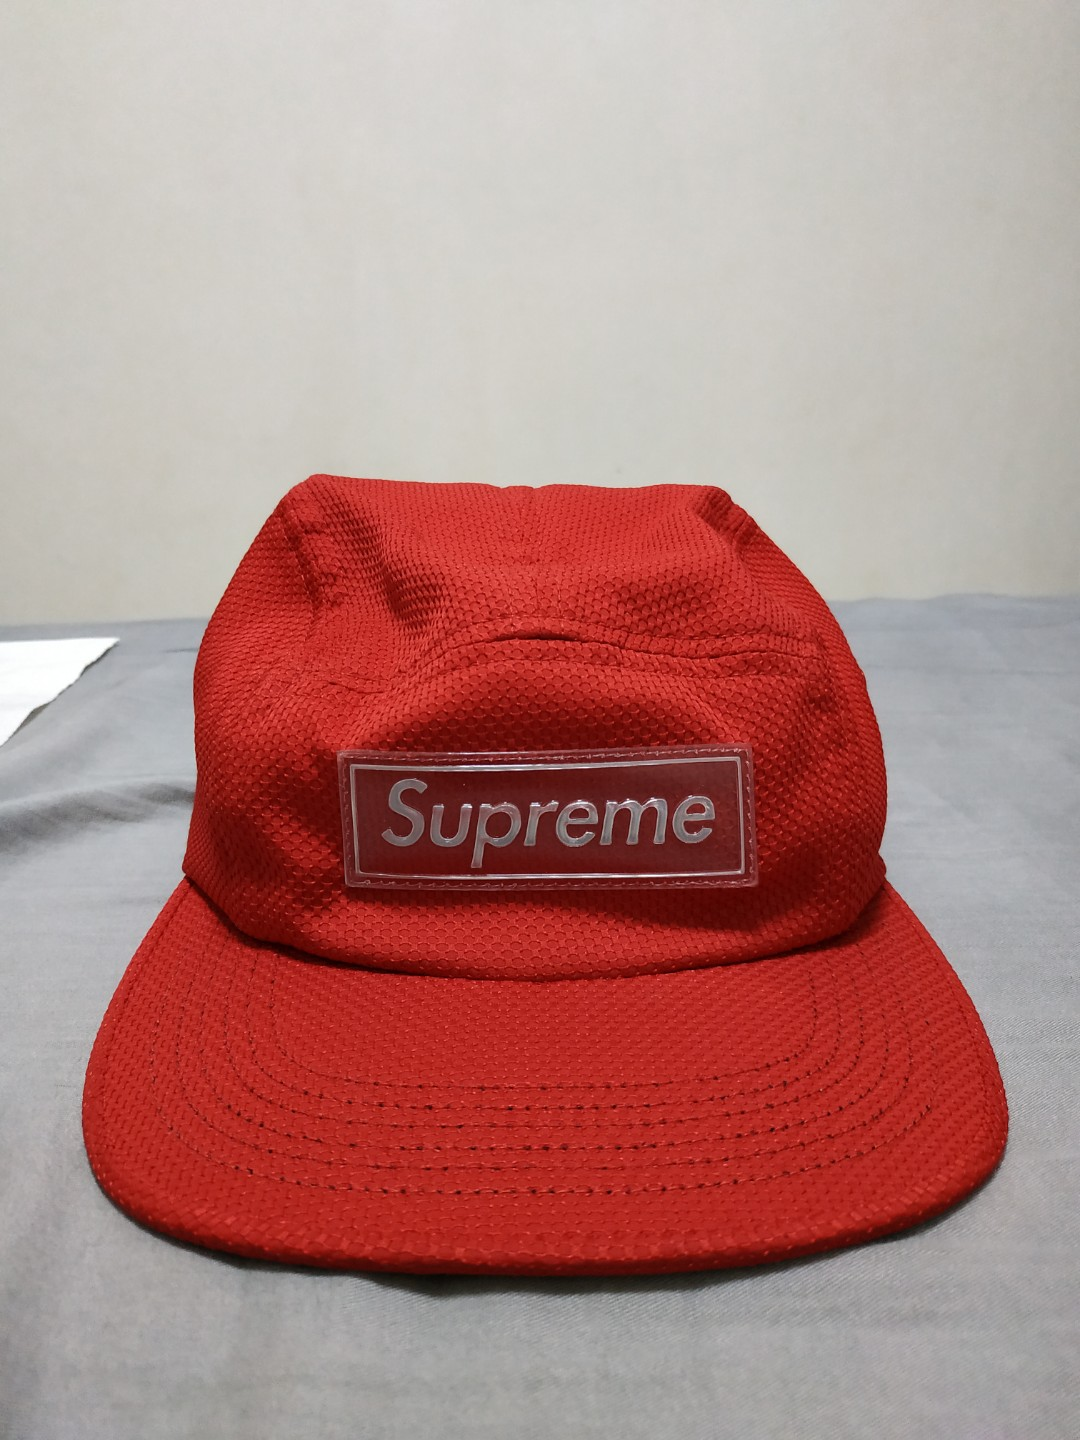 5af7075a Authentic red supreme nylon cap from stockx. Up for trades too, Men's  Fashion, Accessories, Caps & Hats on Carousell